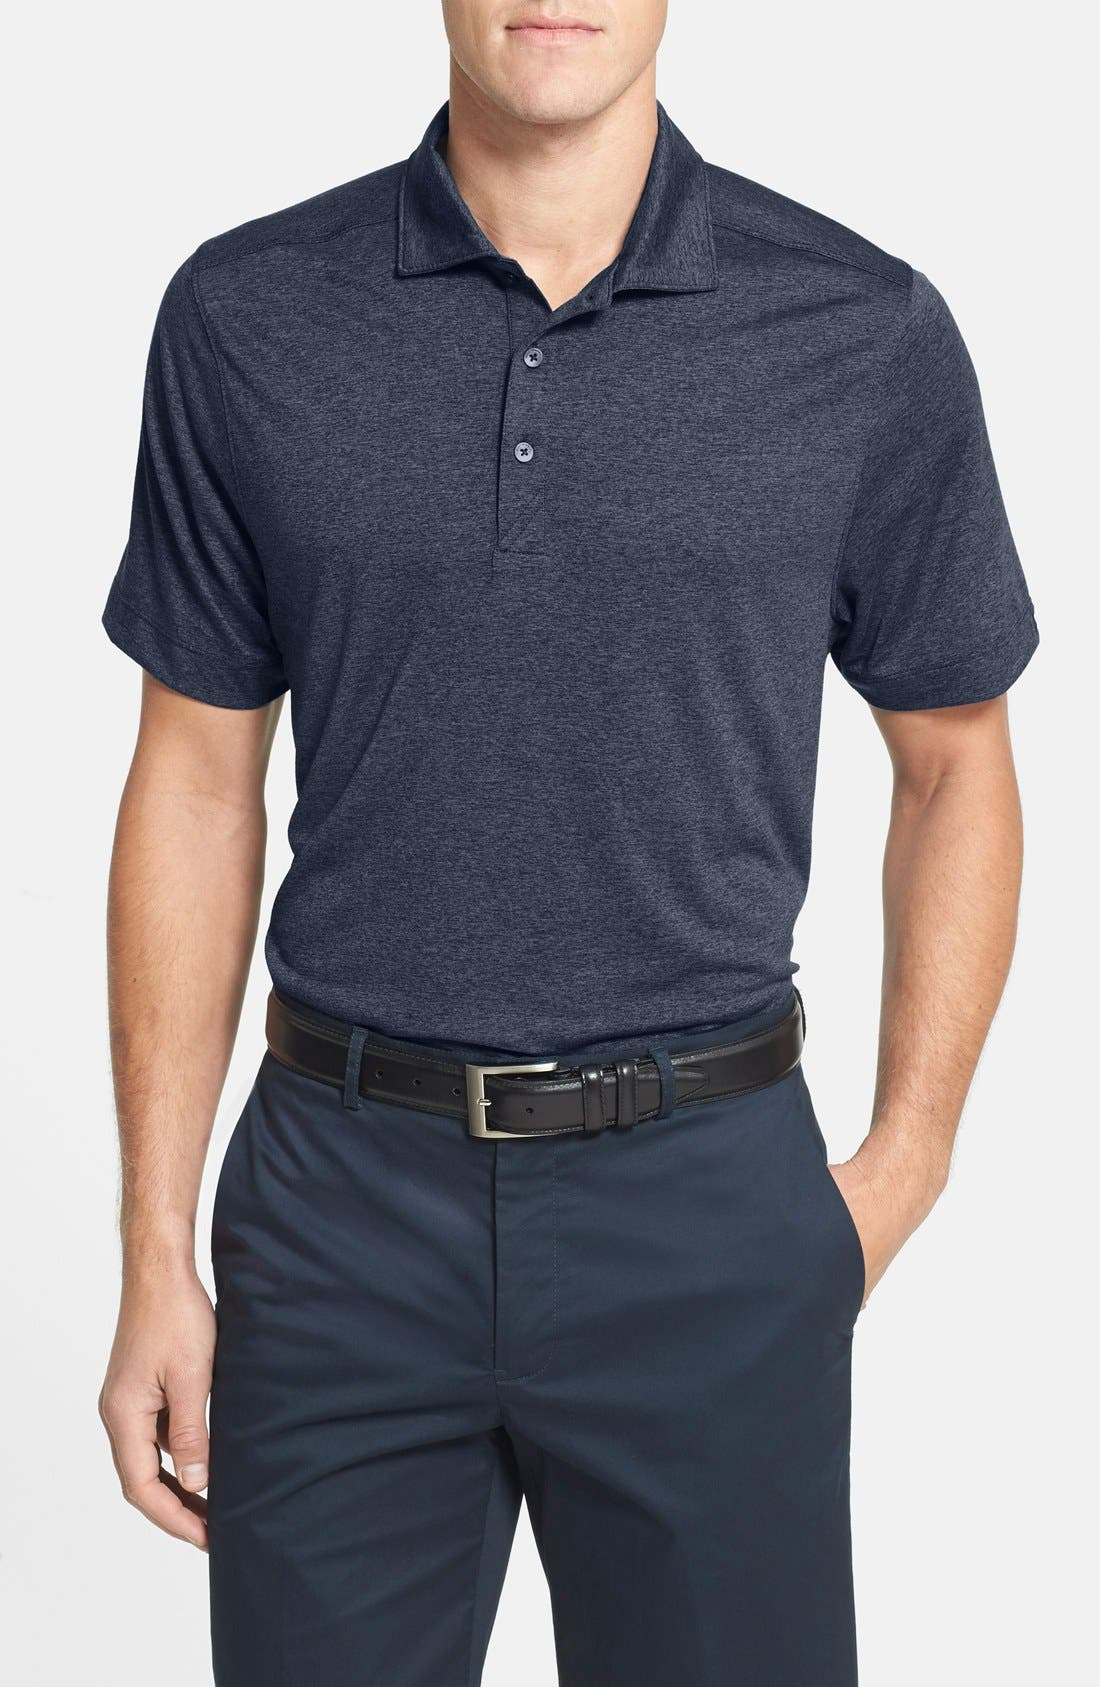 CUTTER & BUCK 'Chelan' DryTec Moisture Wicking Polo